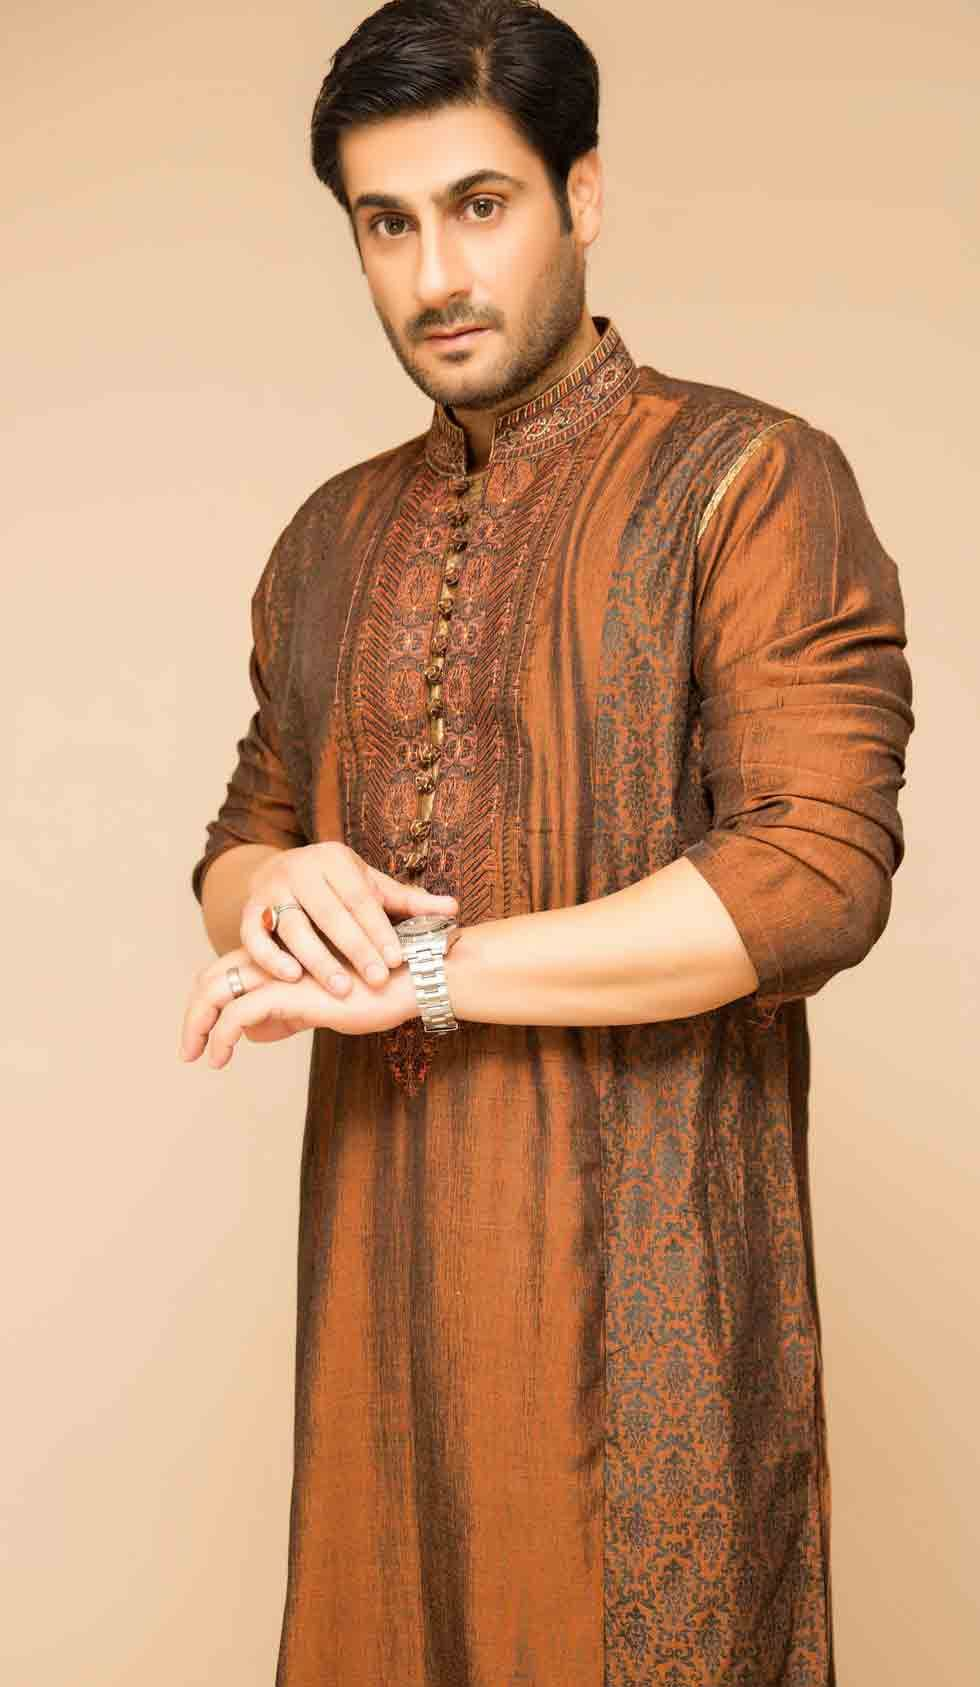 Men dresses mehndi images